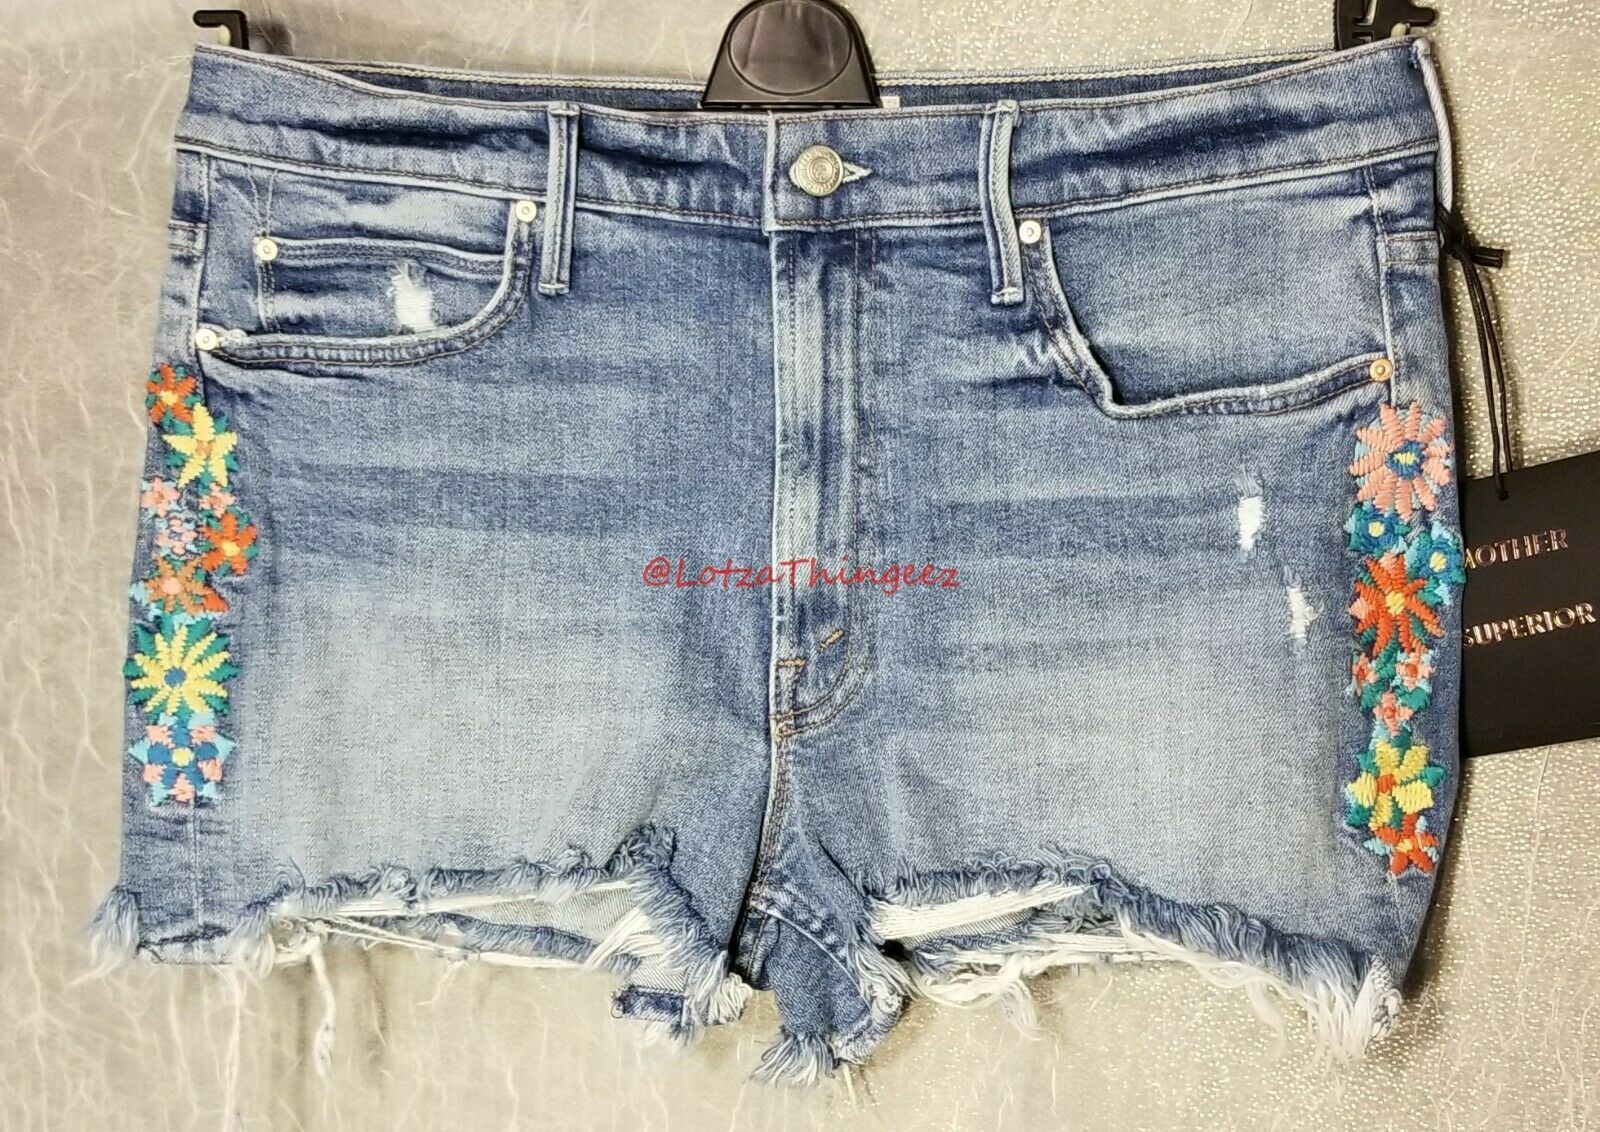 MOTHER The Dutchie Chew Shorts Sz 31 Misbeliever Embroidered Floral NEW